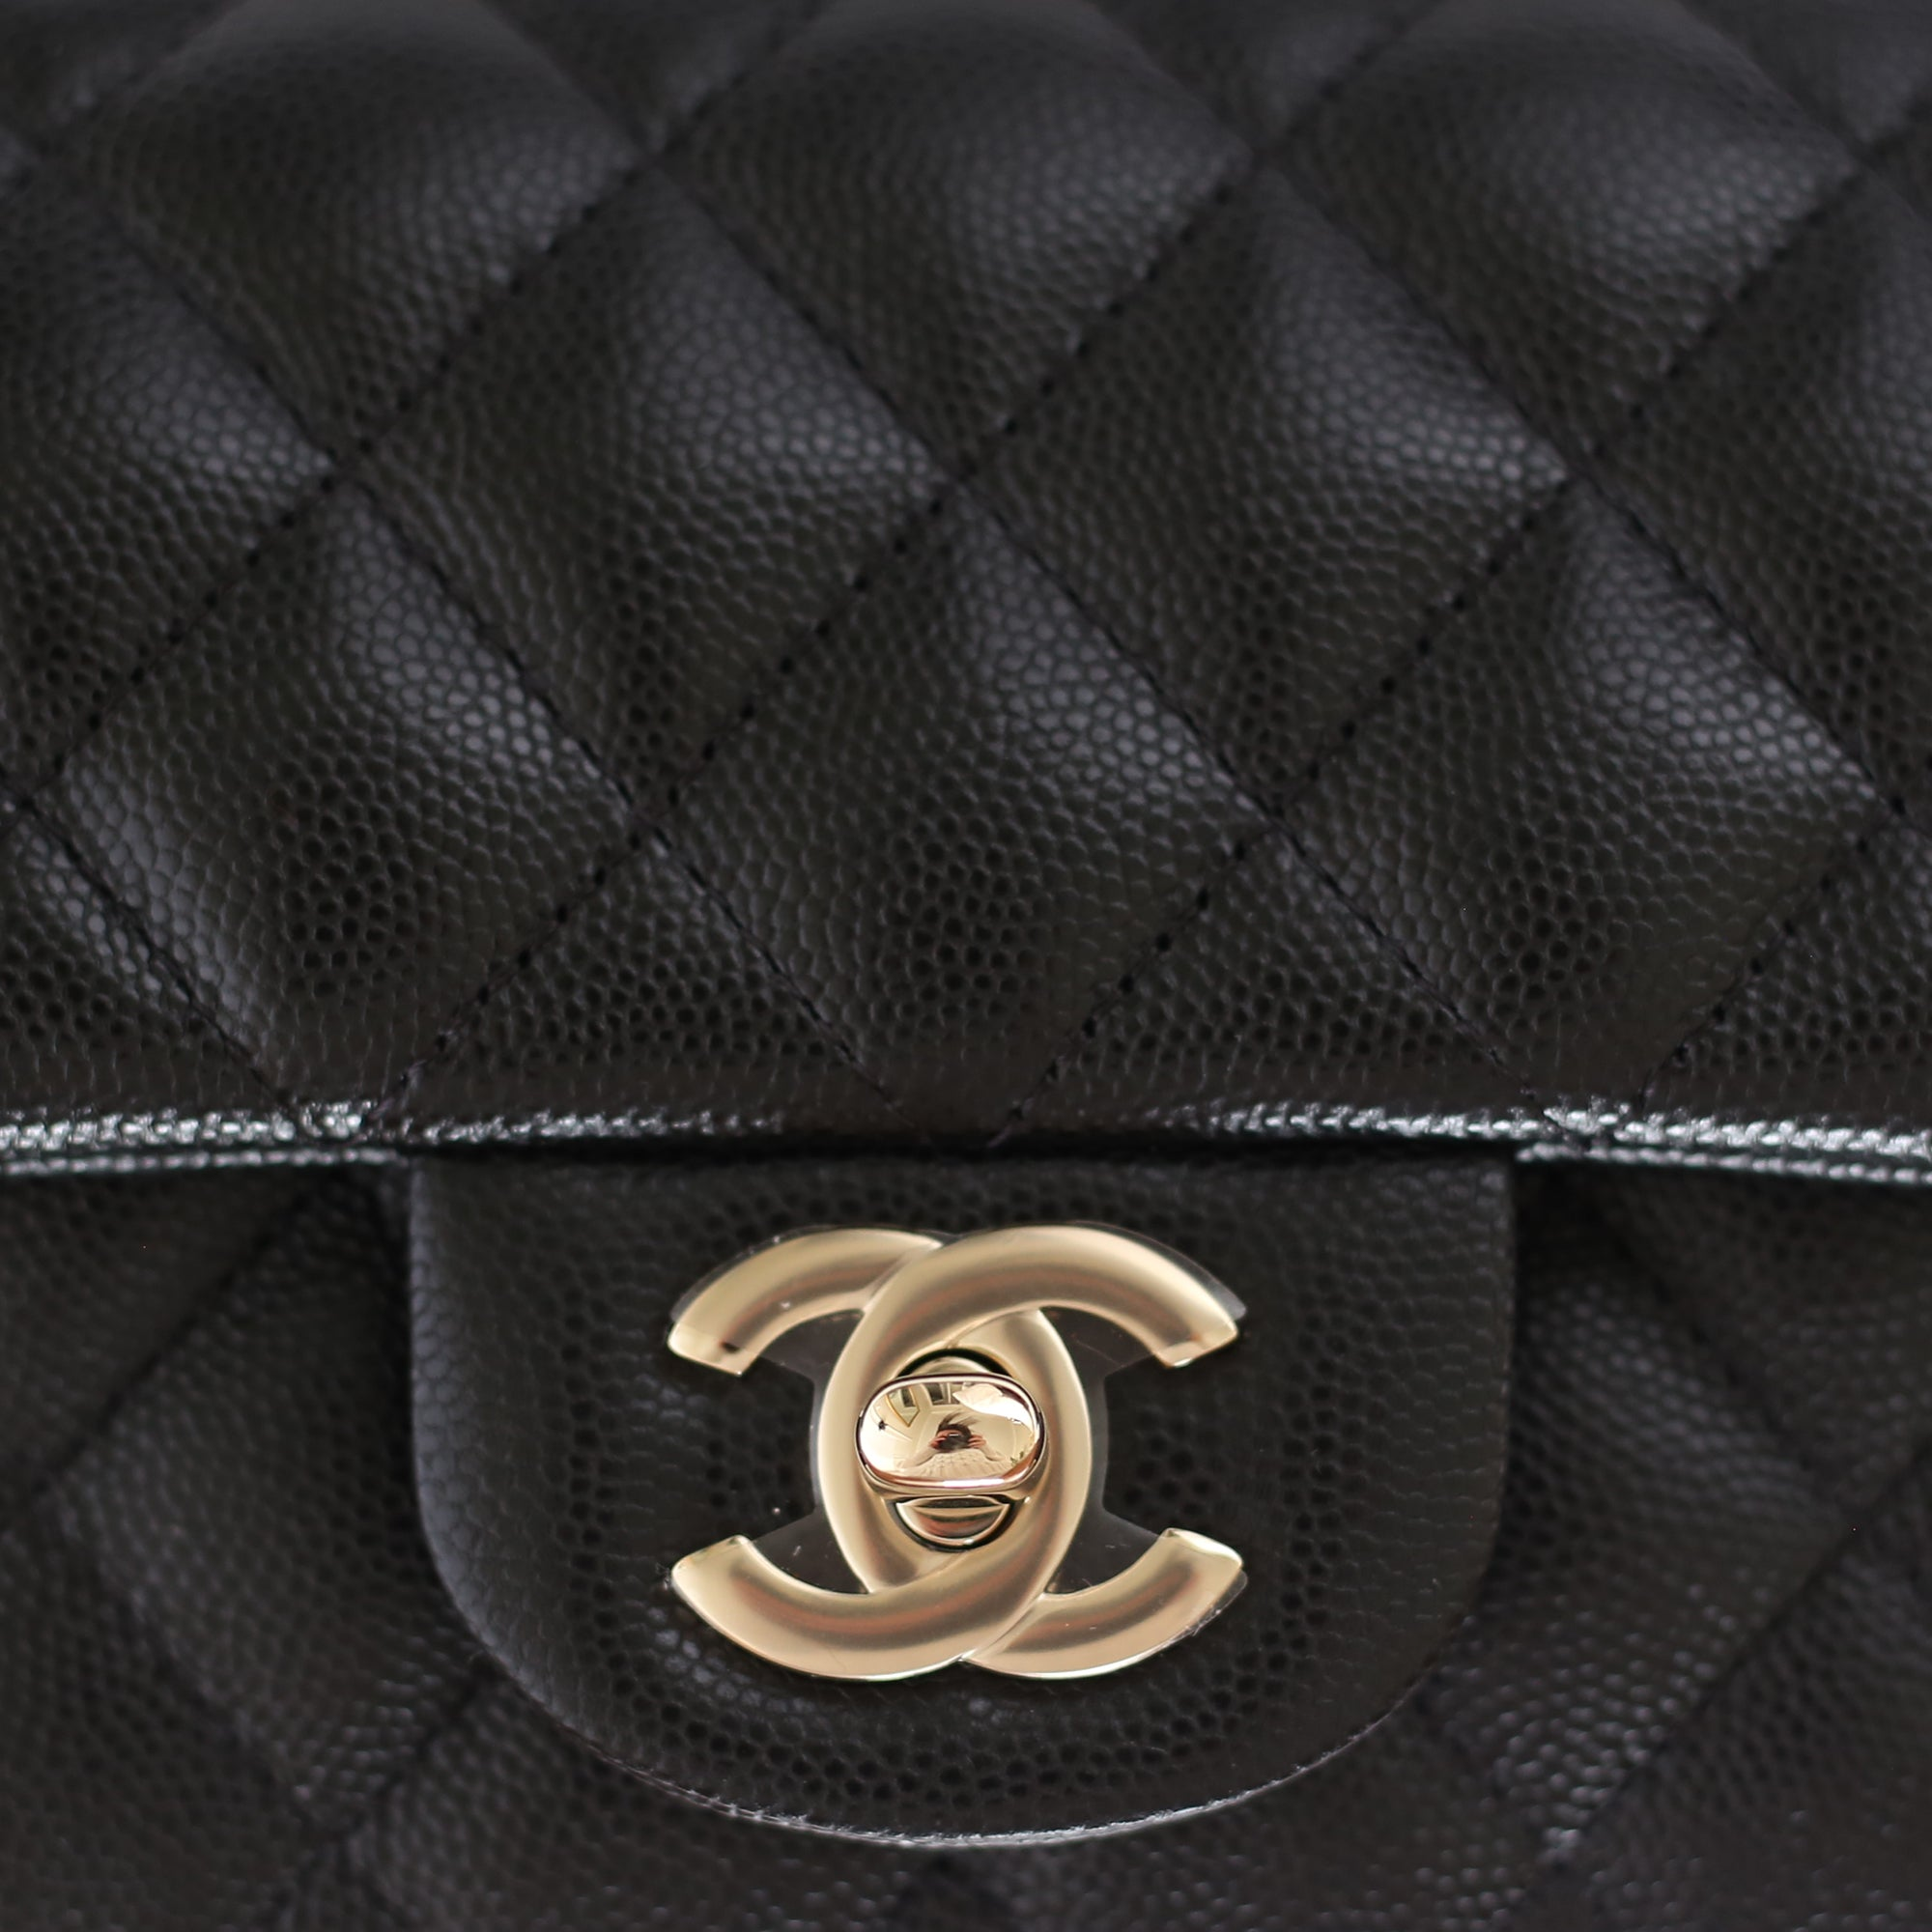 97f94aed1bb5 Chanel | Black Caviar Mini Rectangular Flap Bag with Light Gold Hardware -  The-Collectory